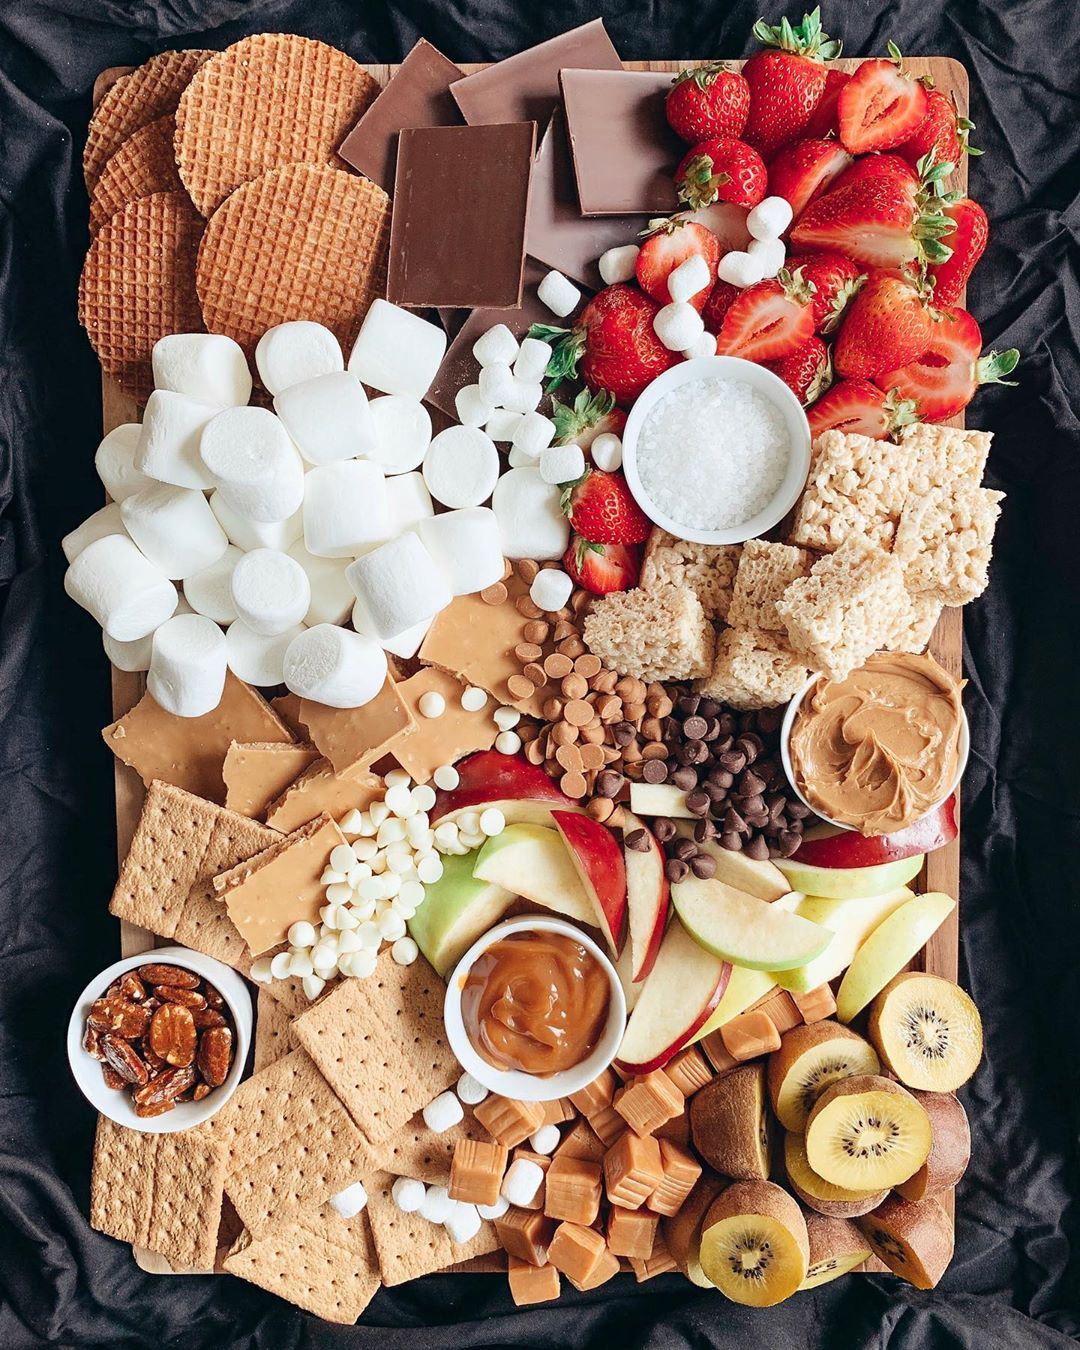 6 snack tray ideas for kids at home all day : S'mores tray from Ashley Merry is such a fun Friday afternoon treat!